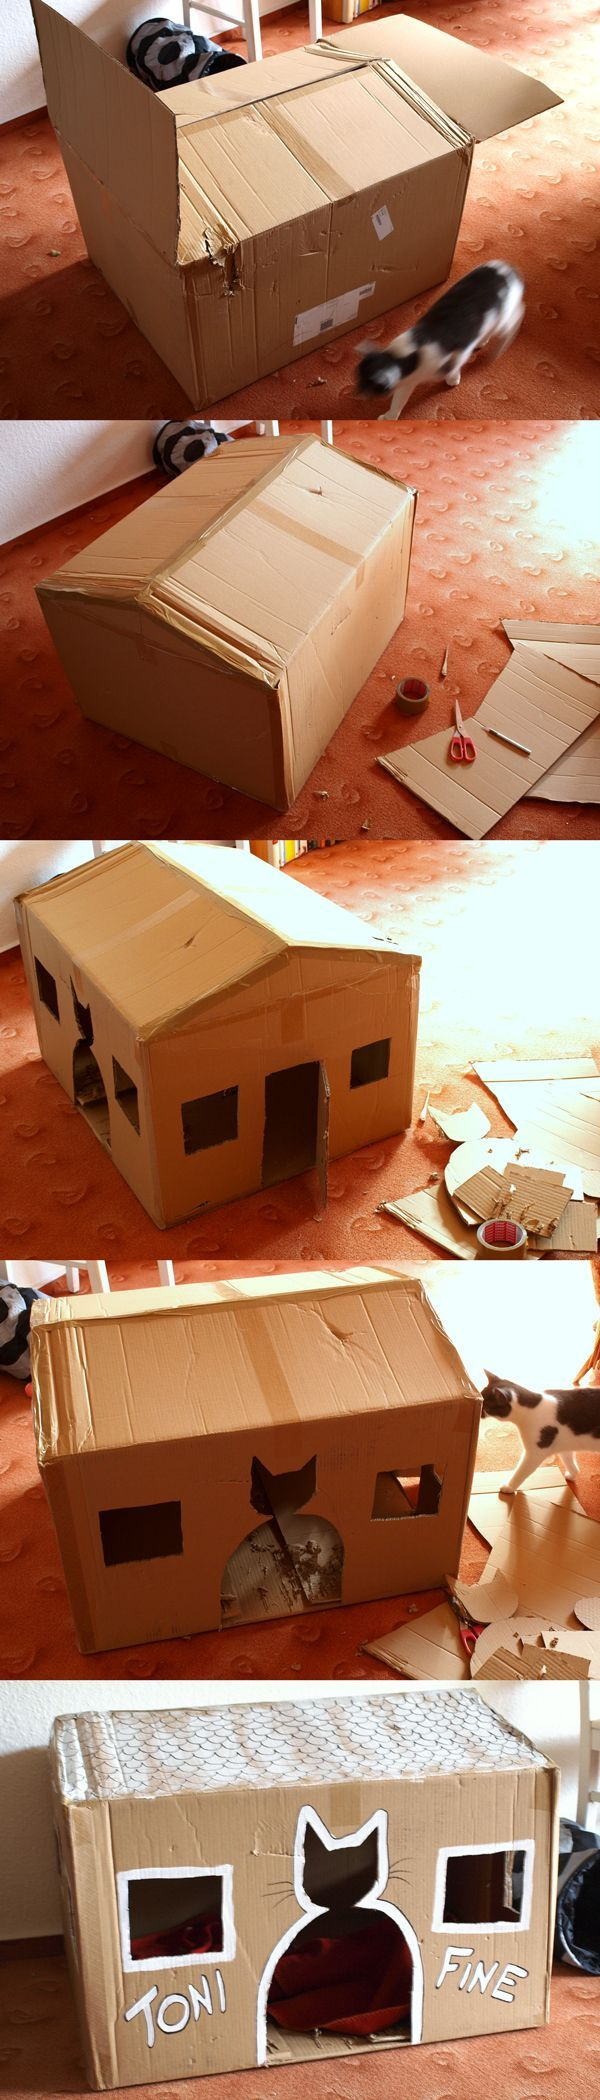 Cat home projects